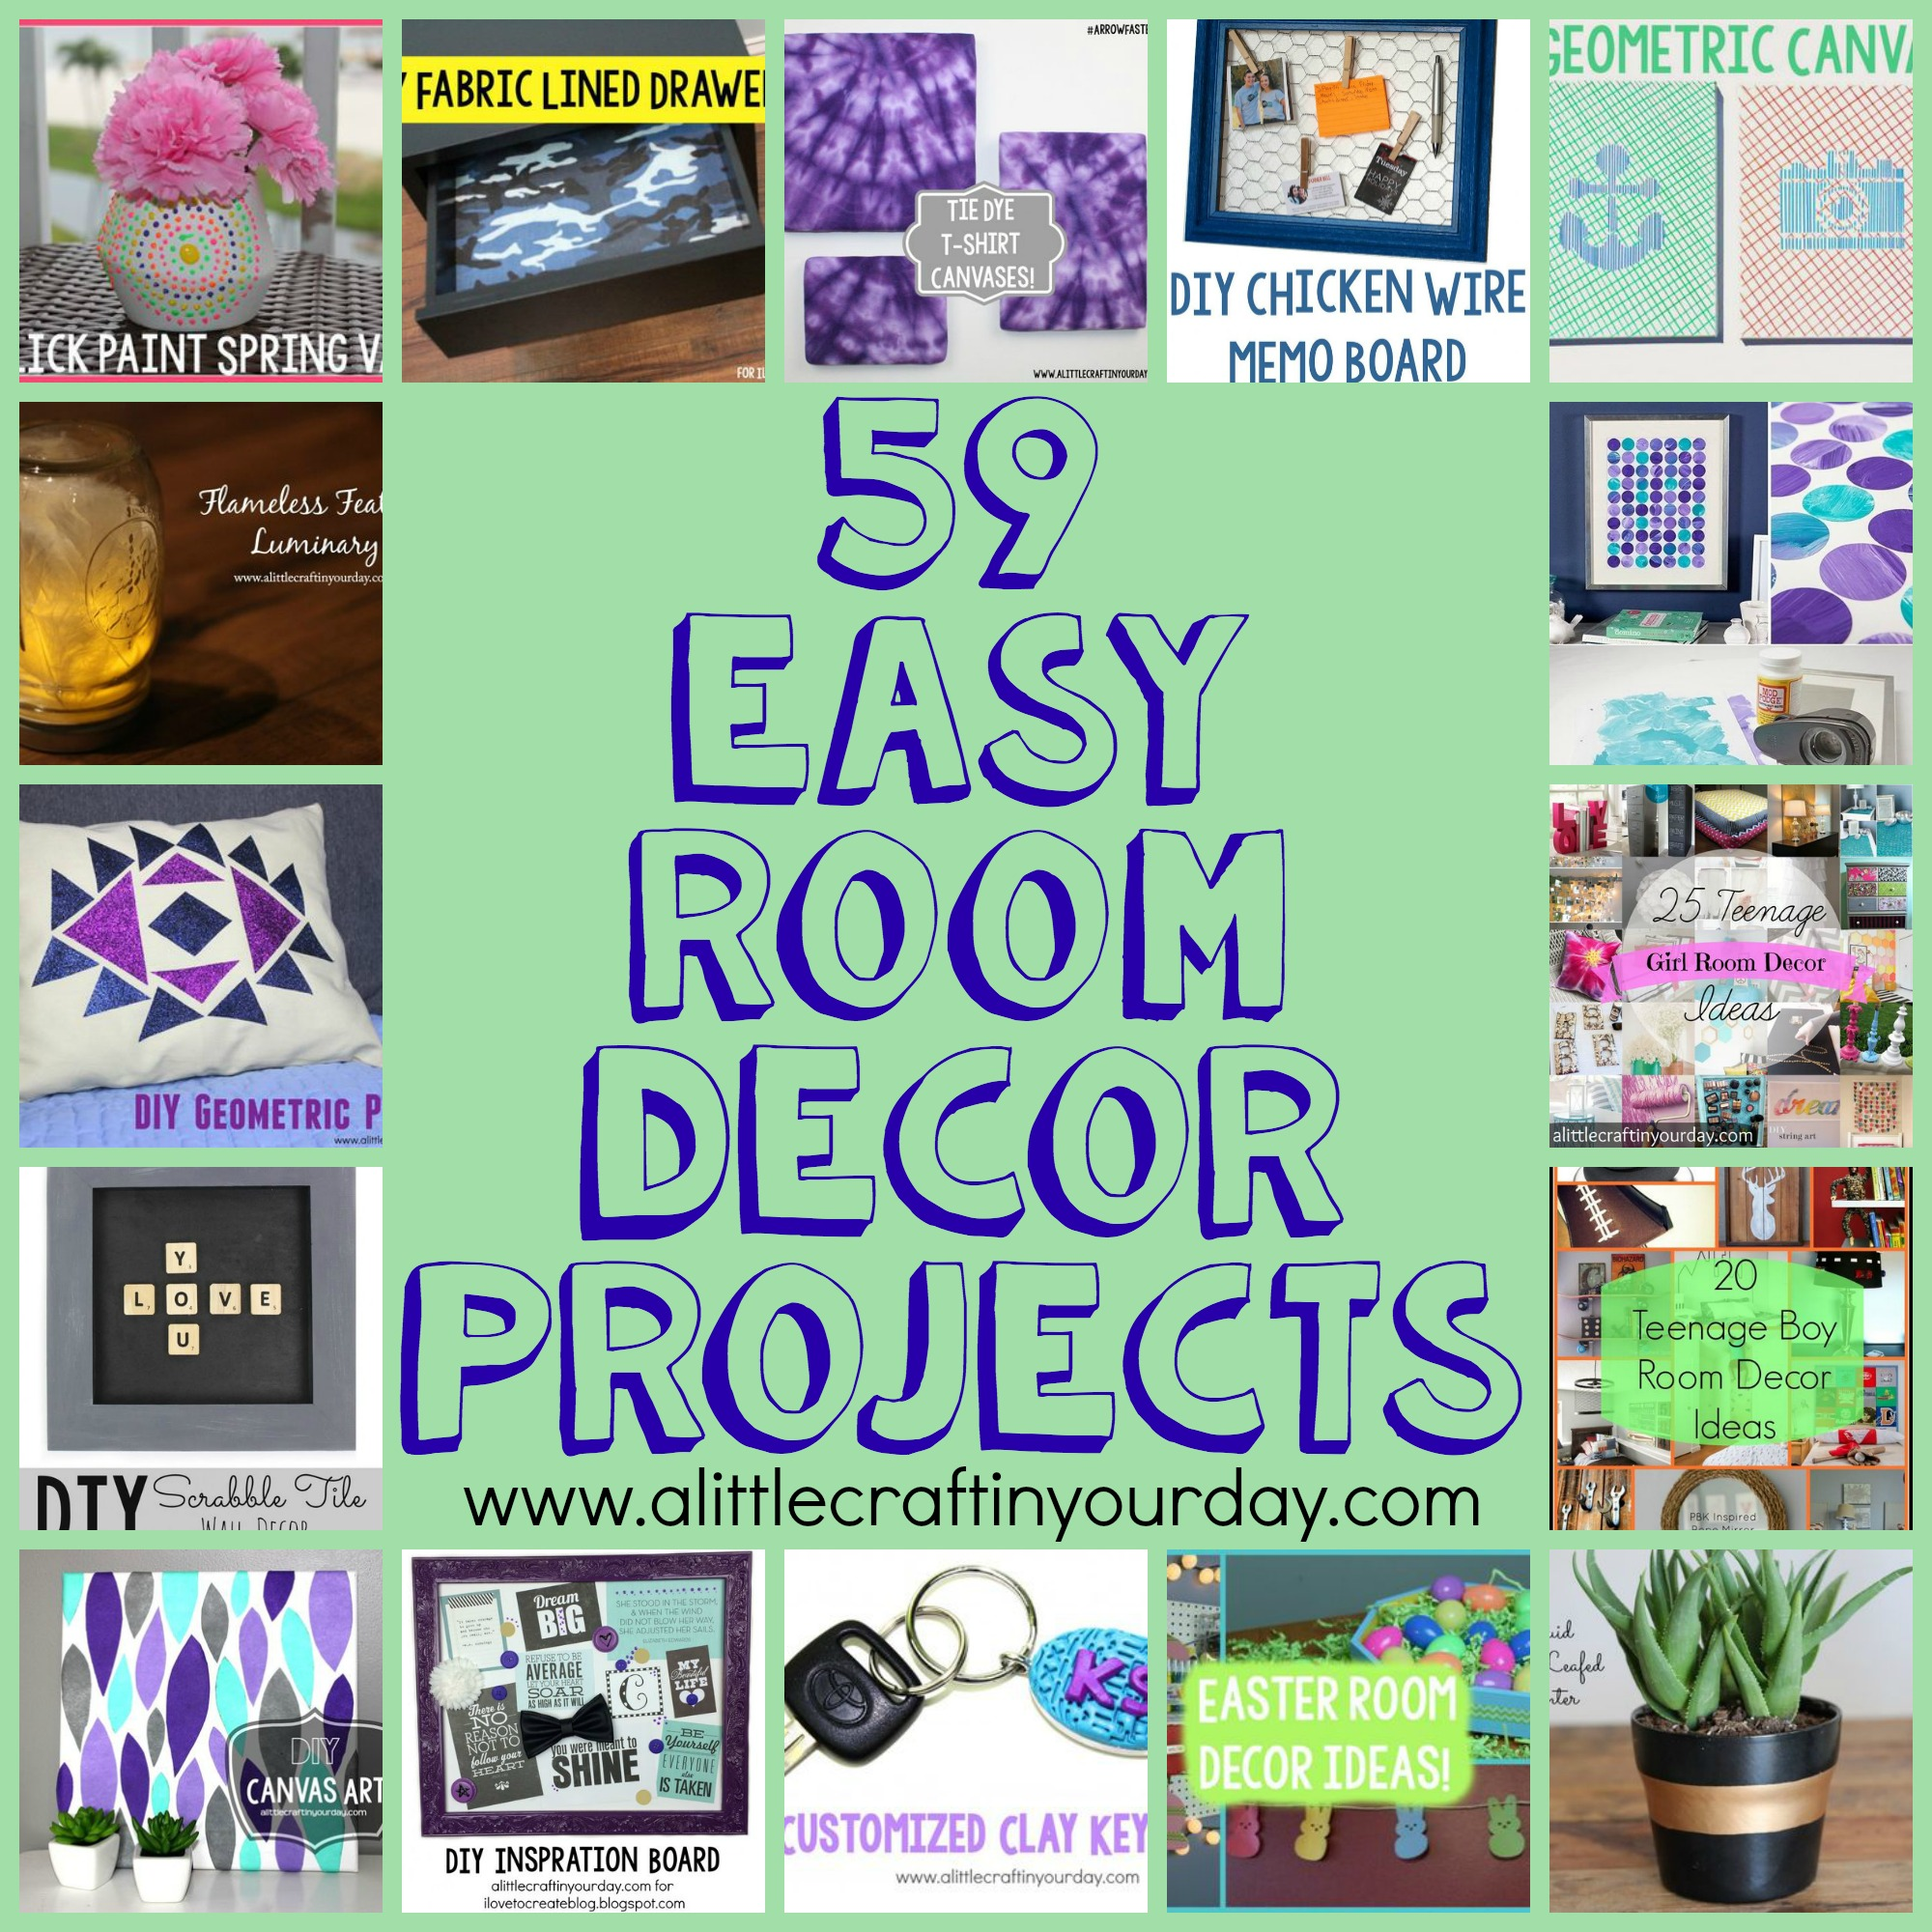 Diy Bedroom Decor Projects 59 easy diy room decor projects - a little craft in your day